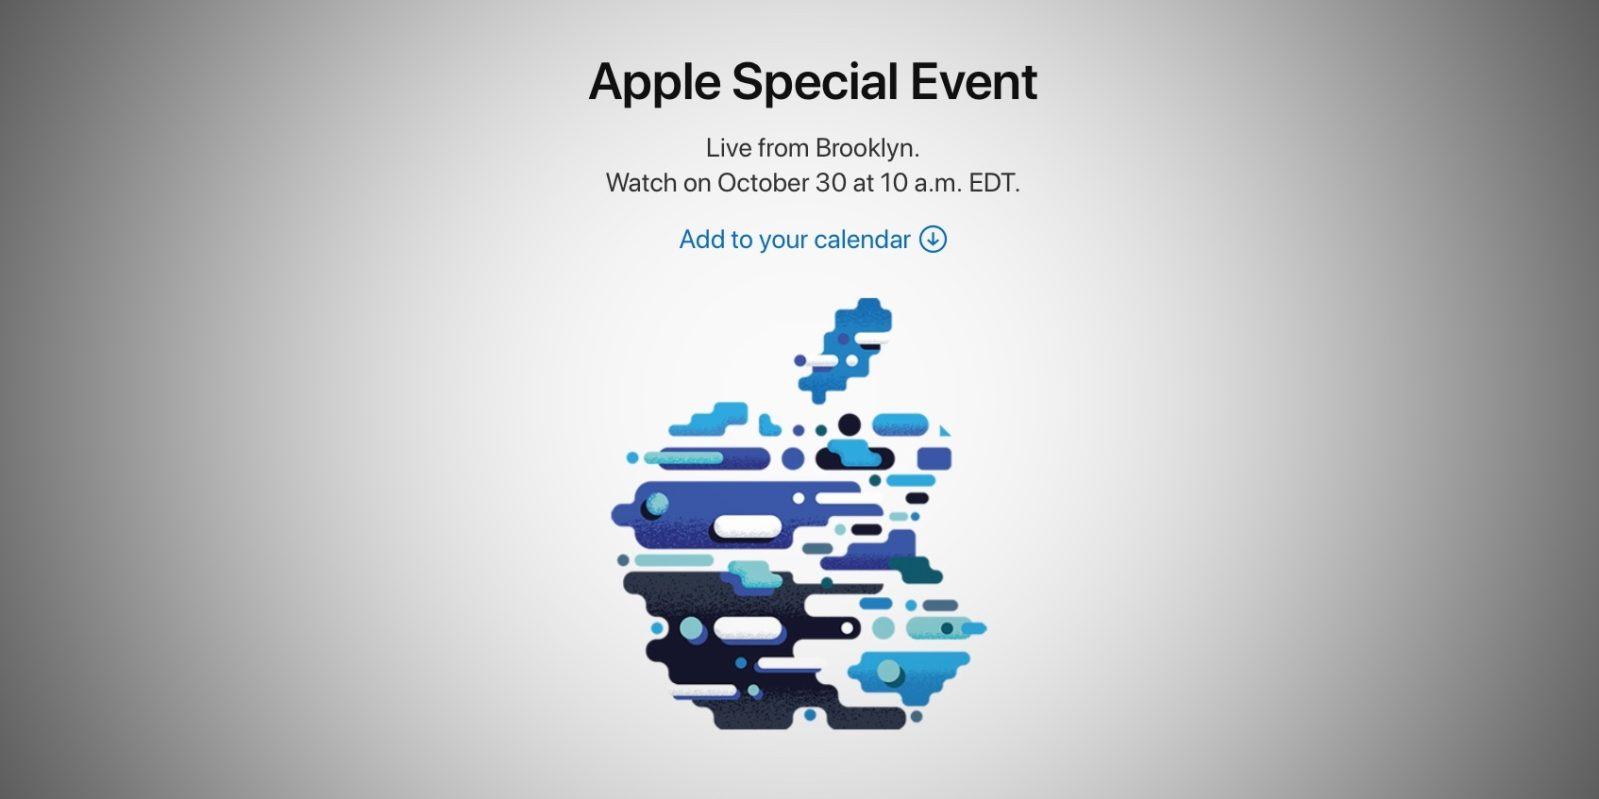 Apple event livestream: How to watch on iPhone, Mac, more - 9to5Mac